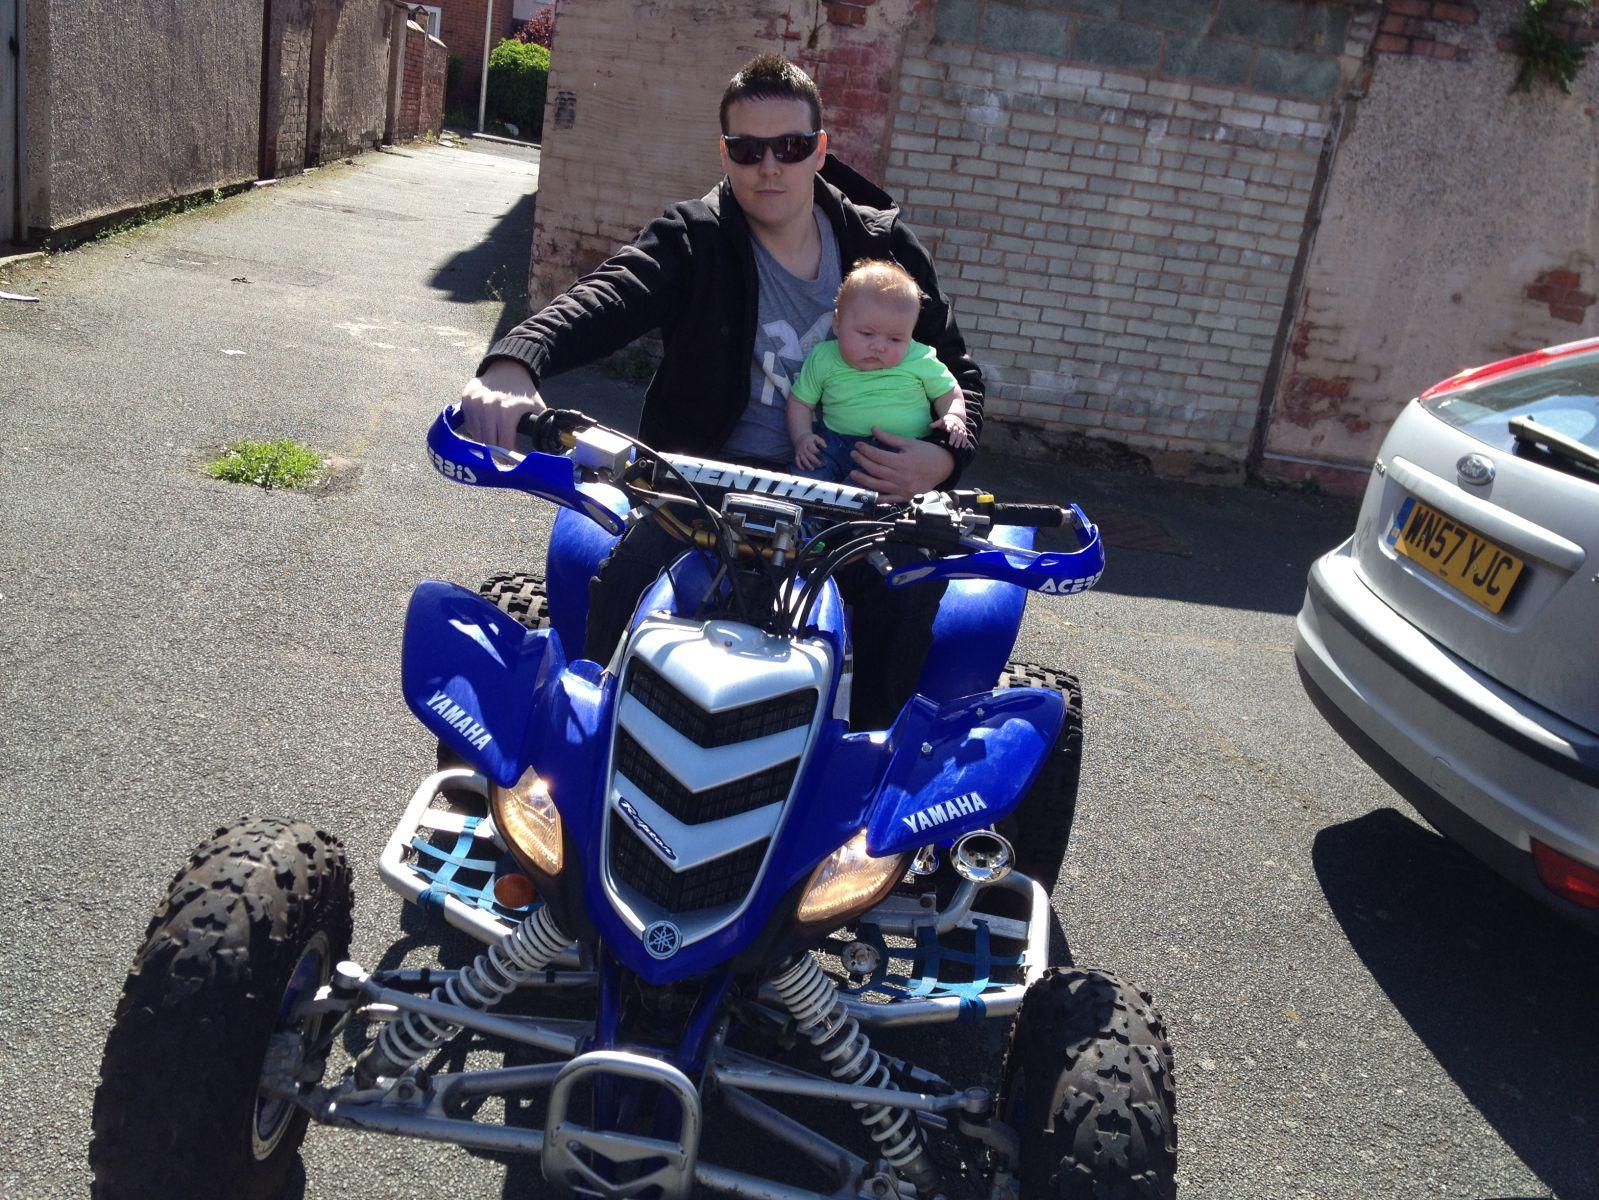 CHECK THE HORNS ON MY QUAD DOES ANYONE HAVE THEM ON THERE CAR. I MUST SAY THEY DO SCARE A LOT OF PEOPLE I EVEN PUT THEM ON THE PAVEMENT SIDE LOL, THEY ALL BLOW A SAME TIME